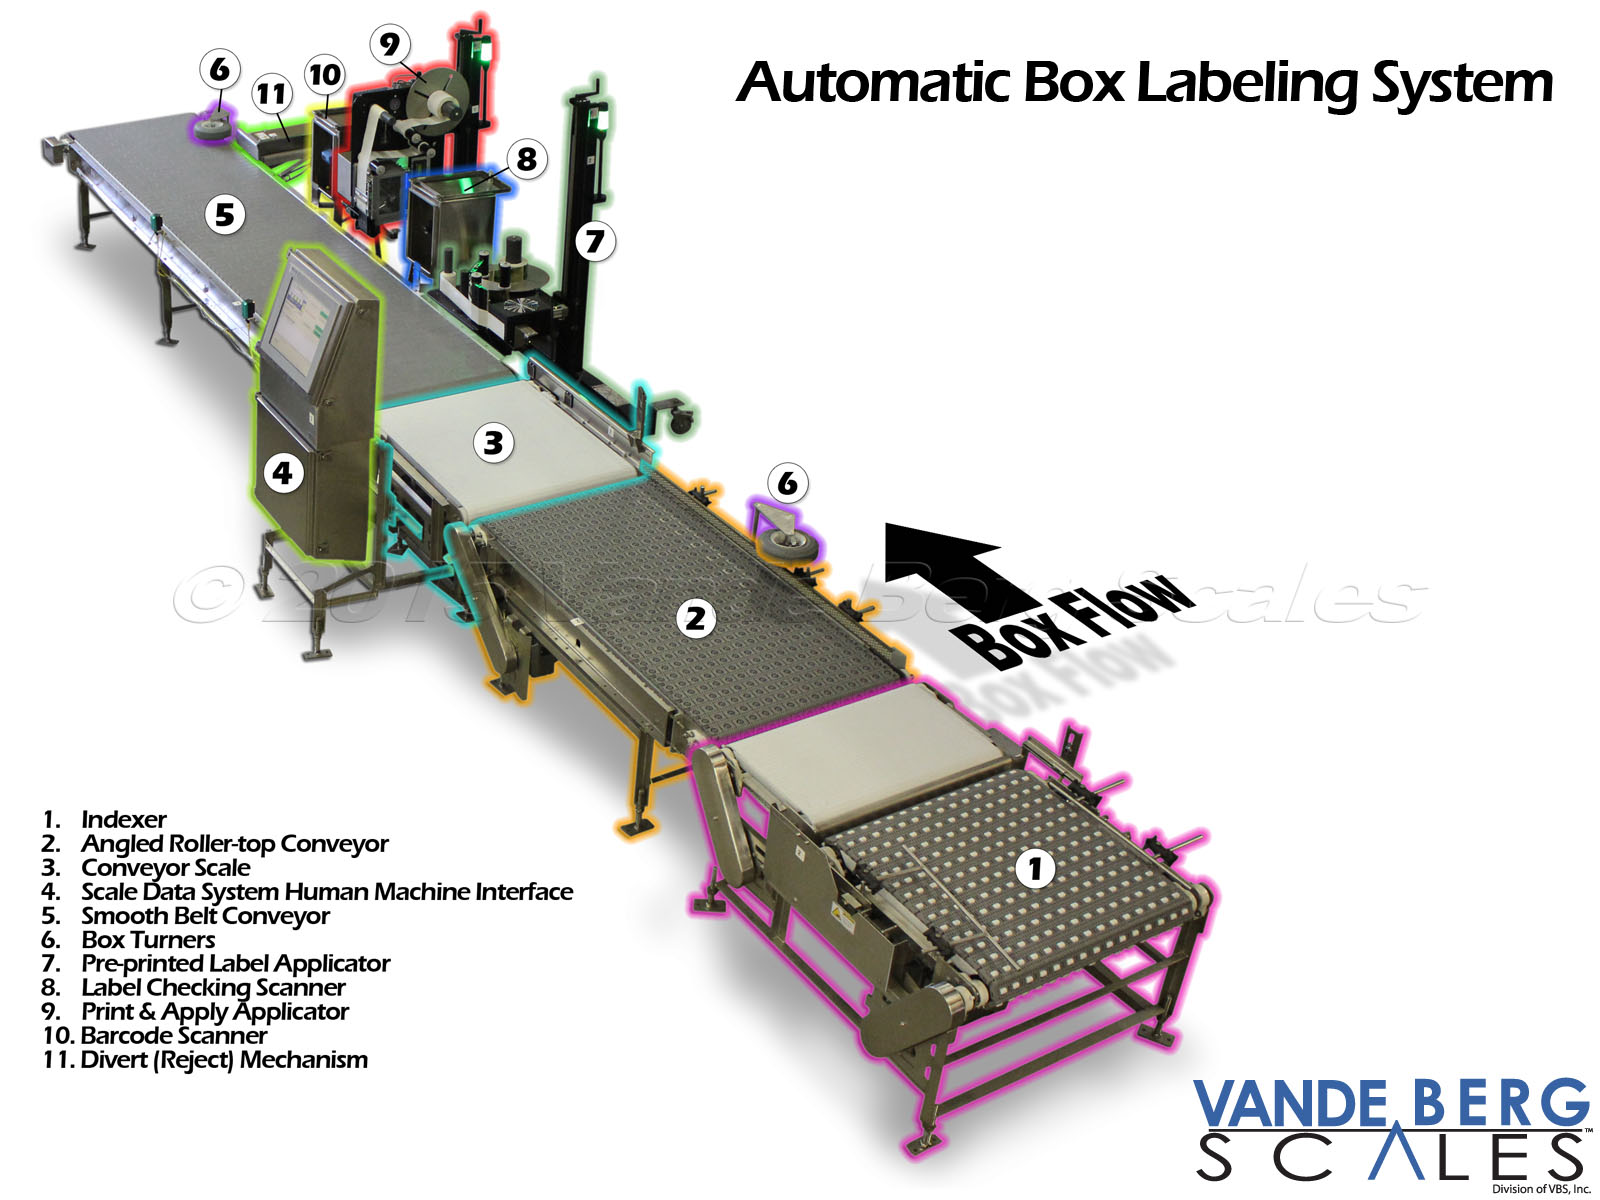 Automatic box labeling system which includes indexing, aligning, label application, database generation and barcode verification.